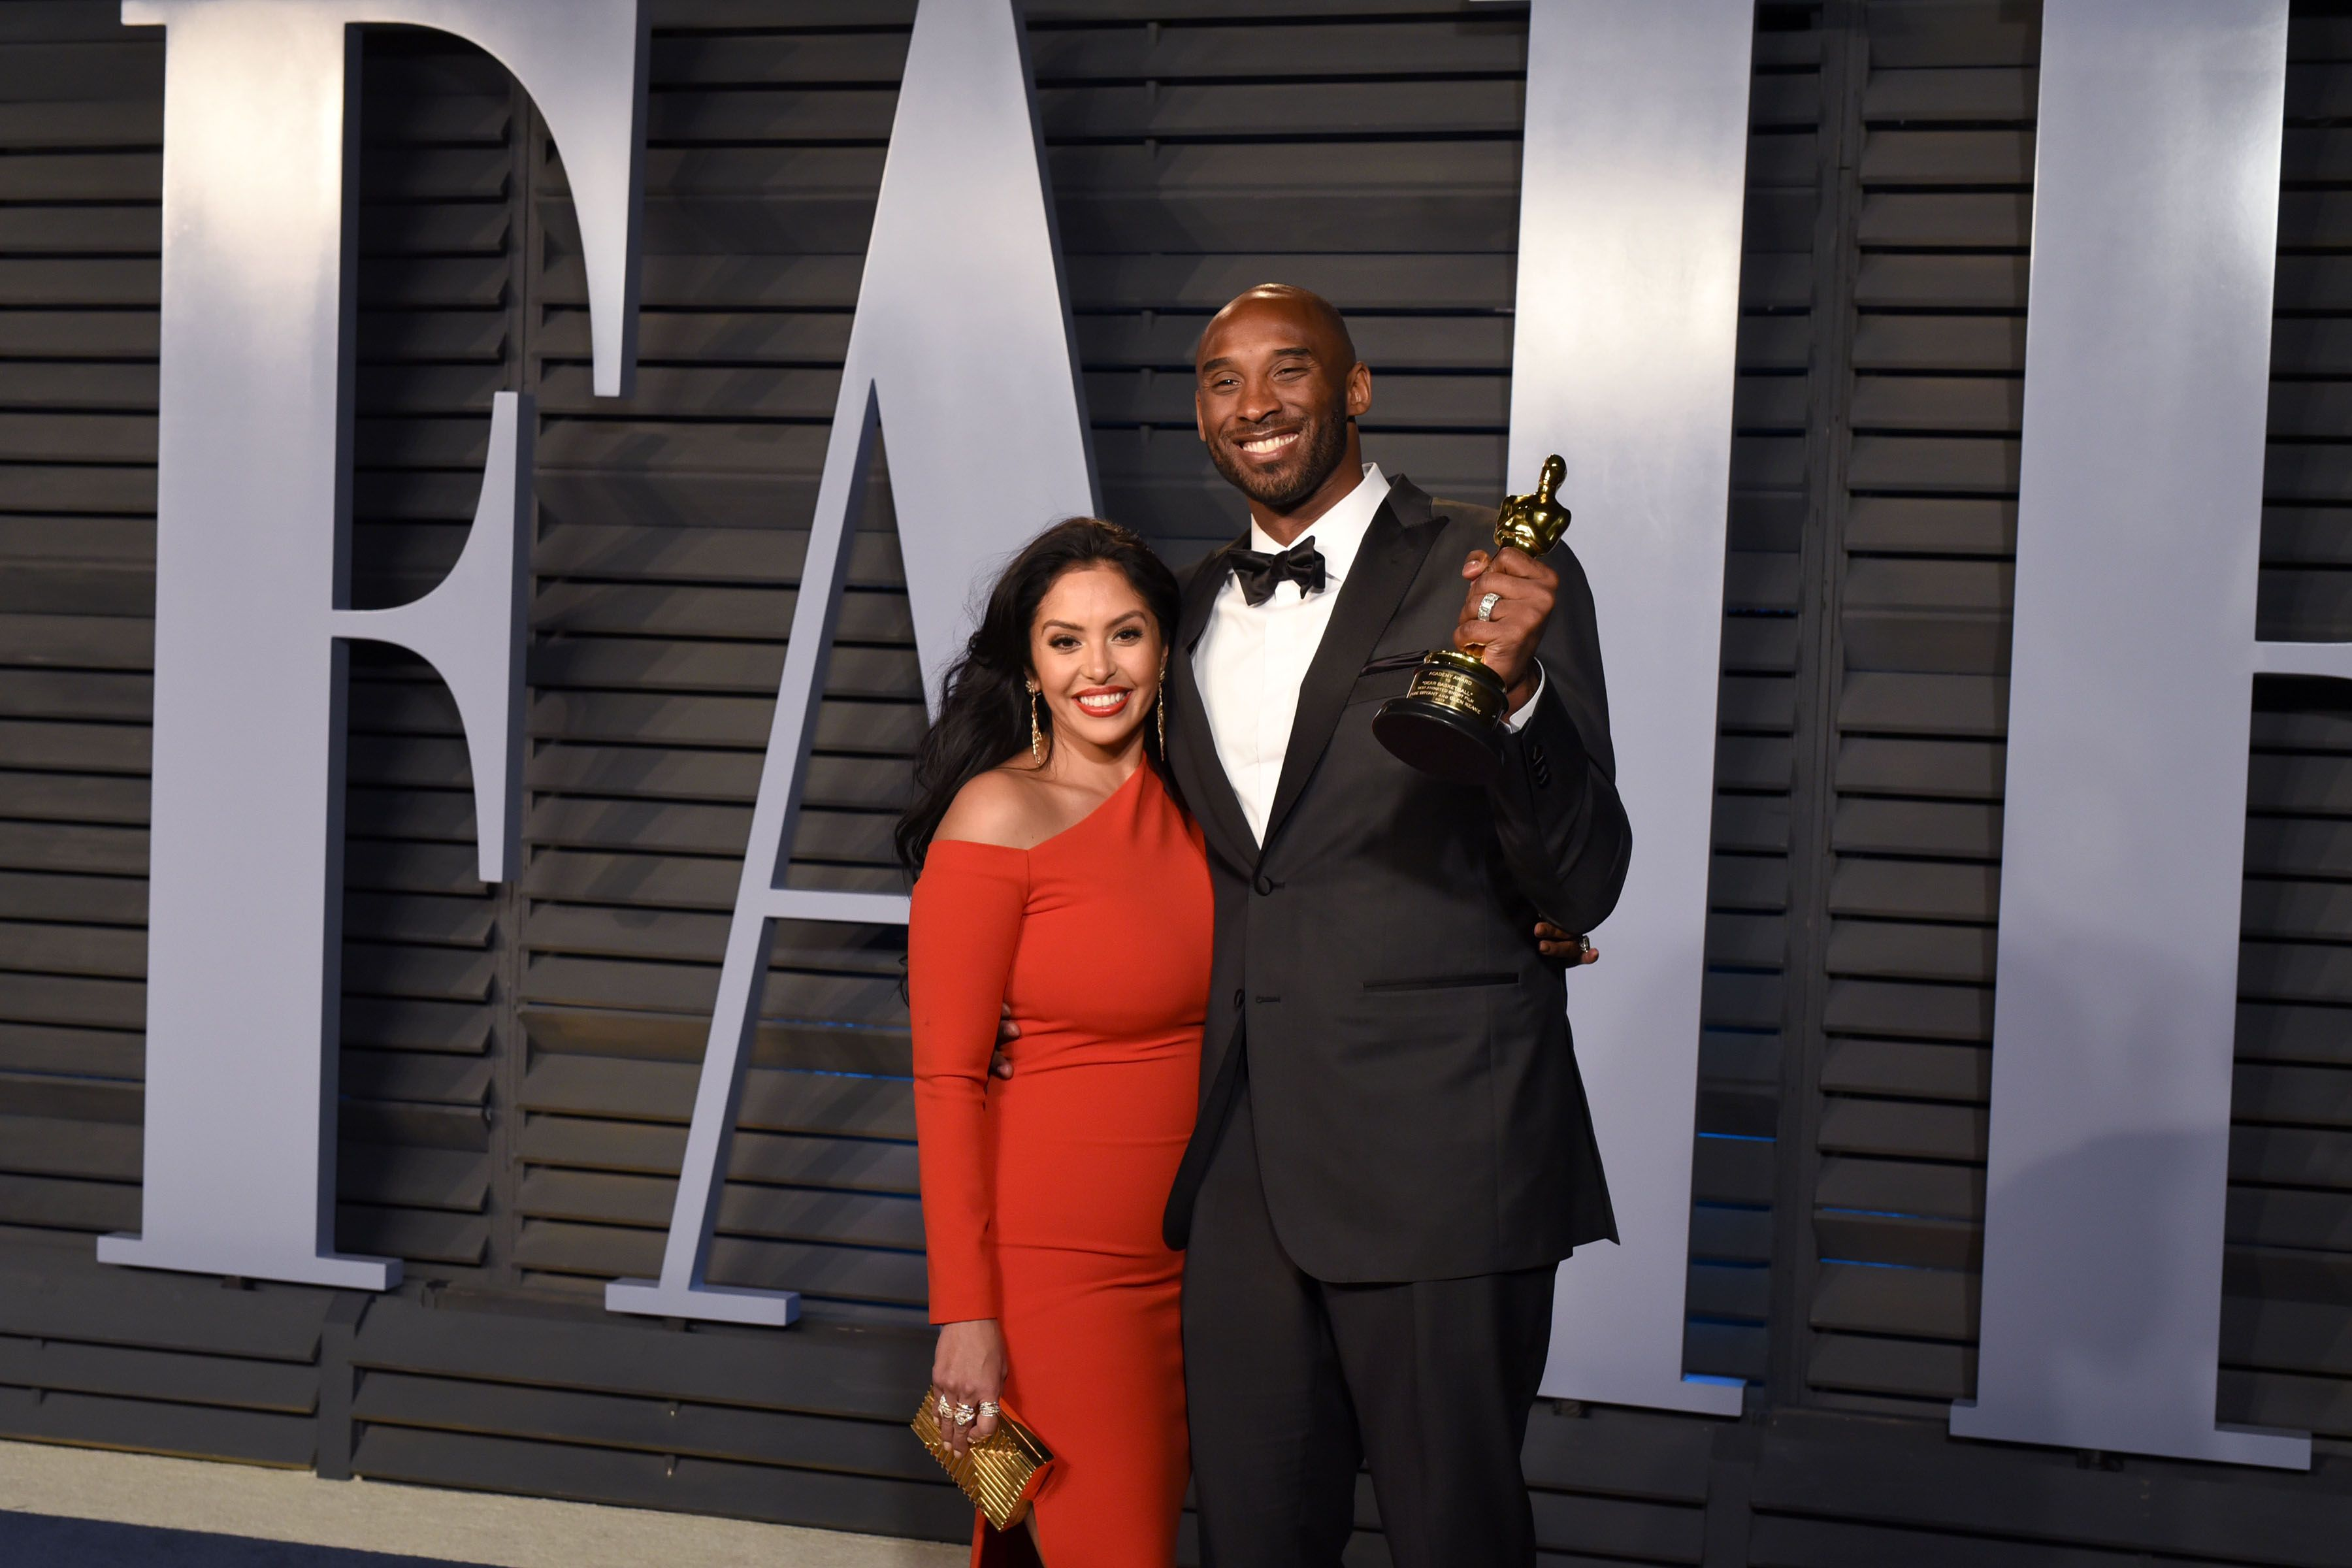 Vanessa Bryant and the late Kobe Bryant at the 2018 Vanity Fair Oscar Party at Wallis Annenberg Center for the Performing Arts on March 4, 2018 | Photo: Getty Images